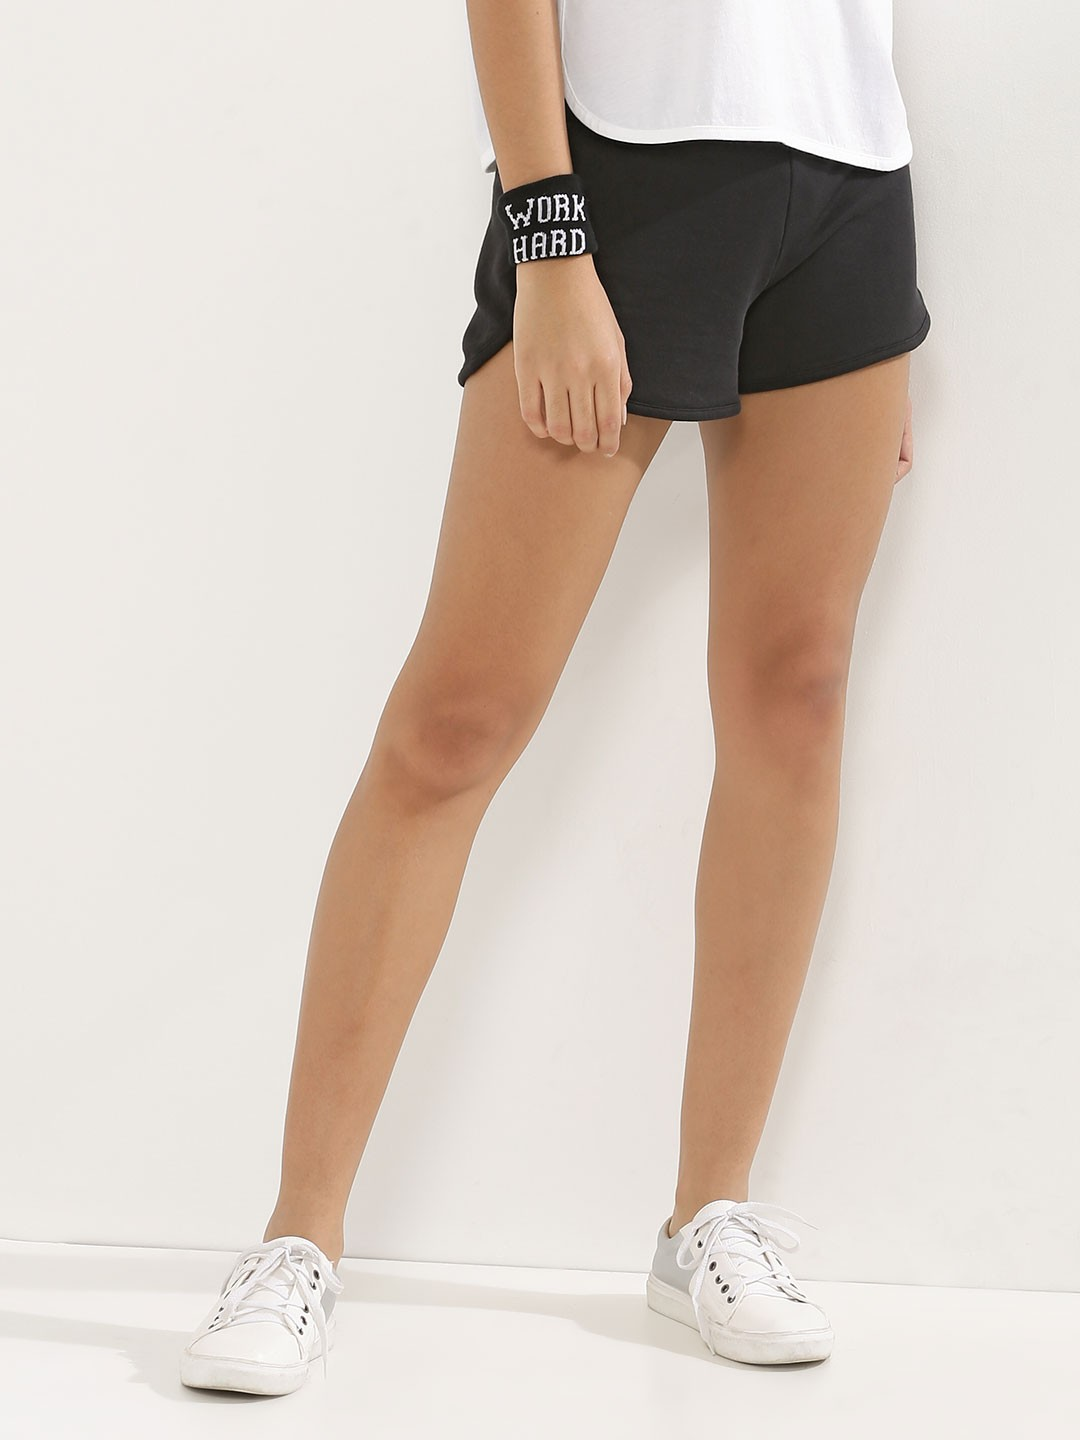 Soak up the sun and create your summer look with New Look's women's shorts, including staple short shorts and hot pants, to on-trend lace shorts and essential yoga shorts. Free delivery available on all of our ladies' shorts.